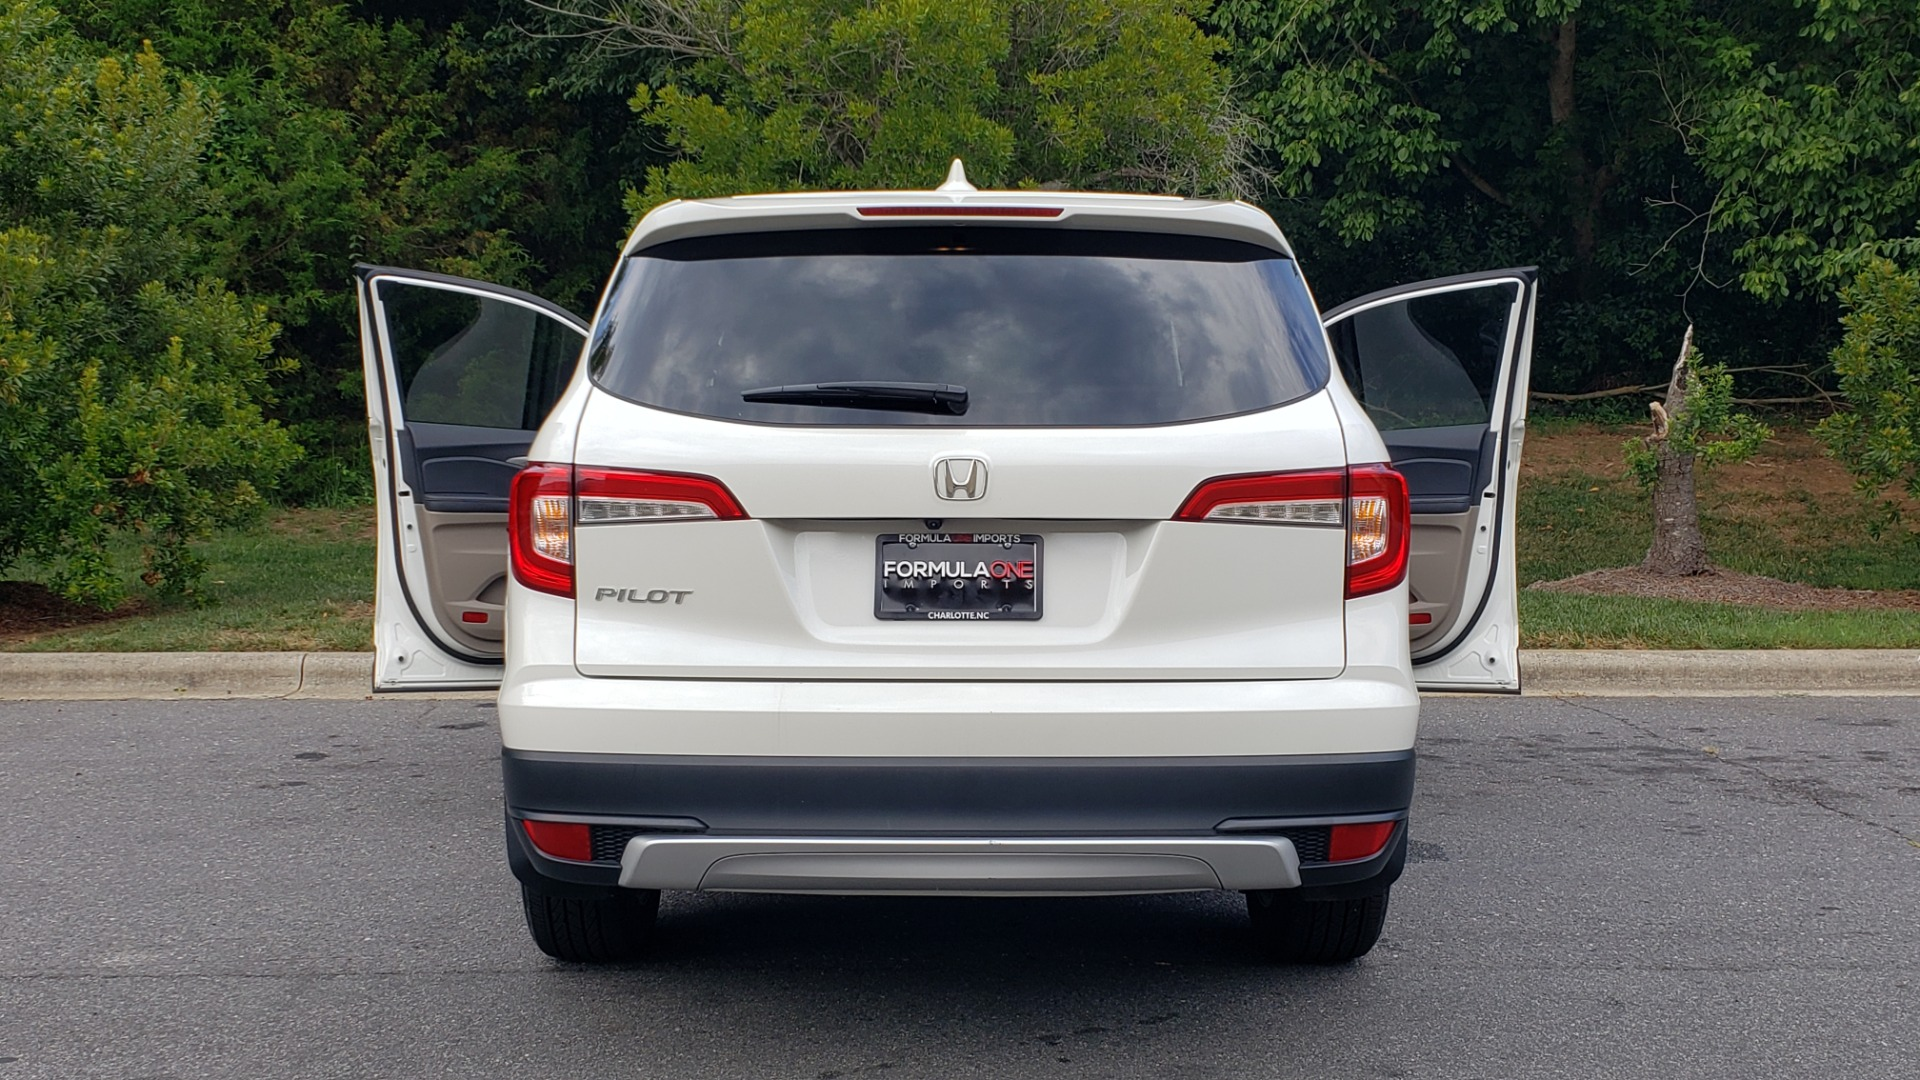 Used 2019 Honda PILOT EX-L / V6 / NAV / SUNROOF / DVD / 3-ROW / REARVIEW for sale Sold at Formula Imports in Charlotte NC 28227 29